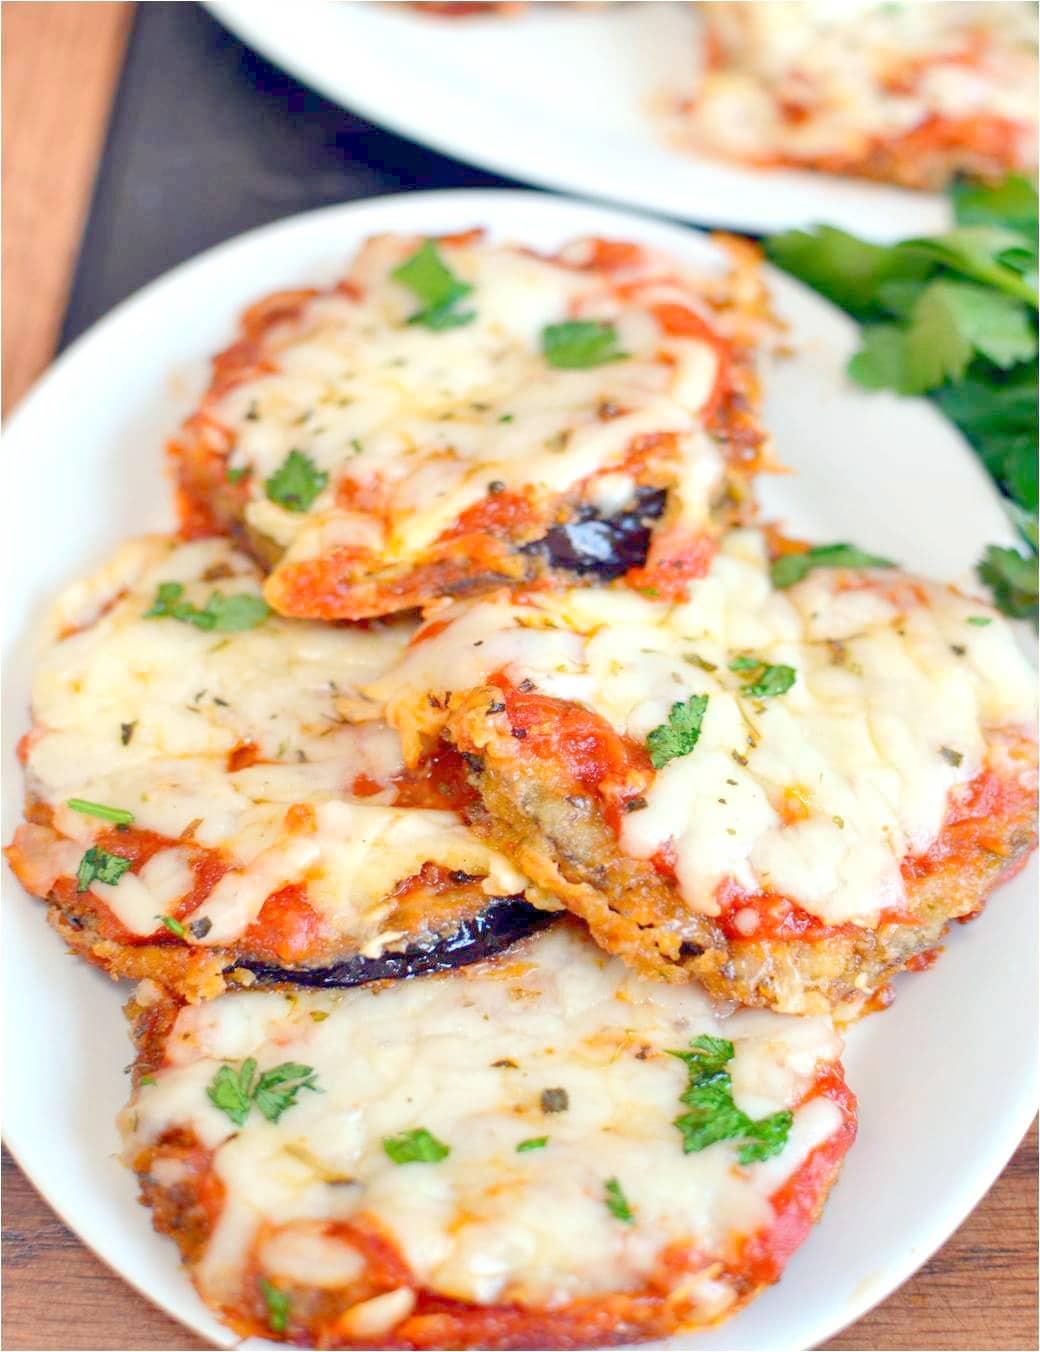 eggplant parmesan recipe recipes baked parm sauce fried simple italian cook delicious thecozycook fresh easy plant dishes tomato cheese dinner